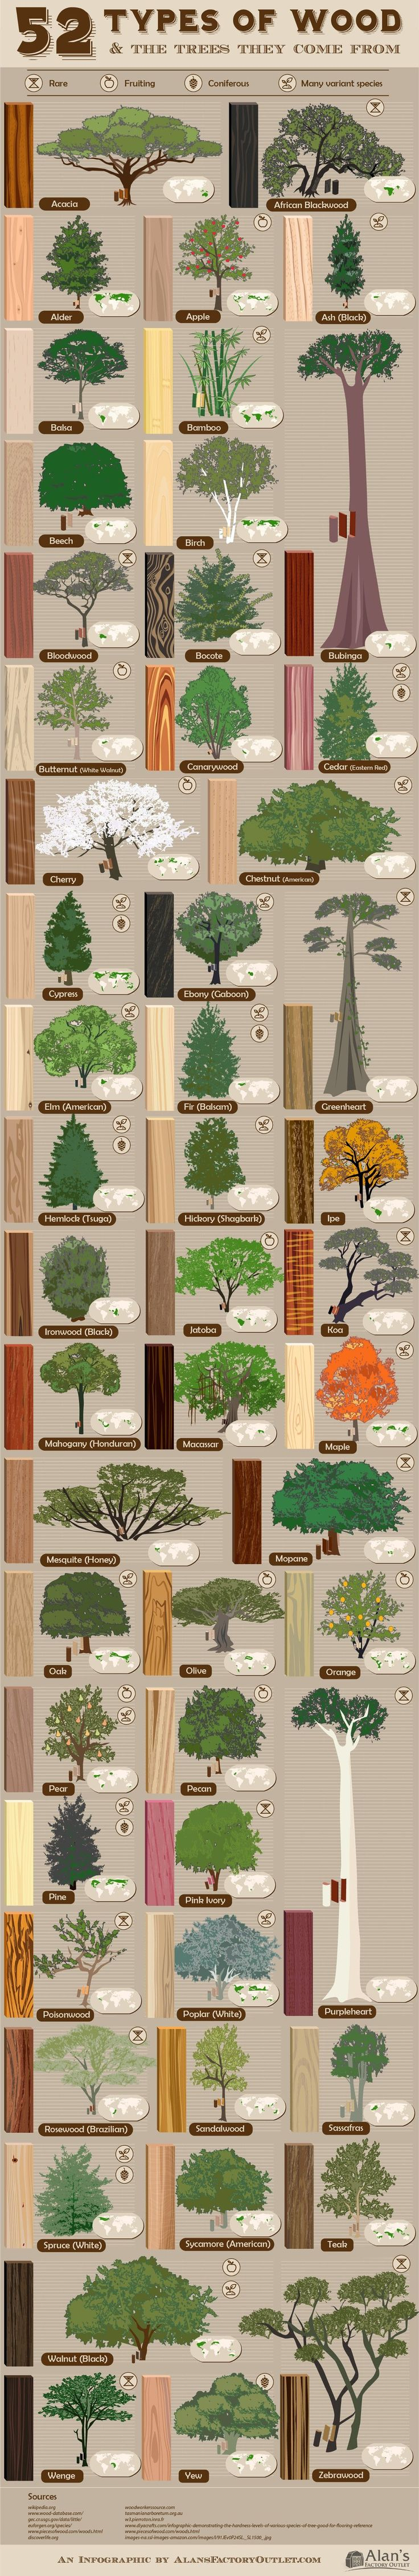 Get to know your wood! 52 types of timber and origin trees.